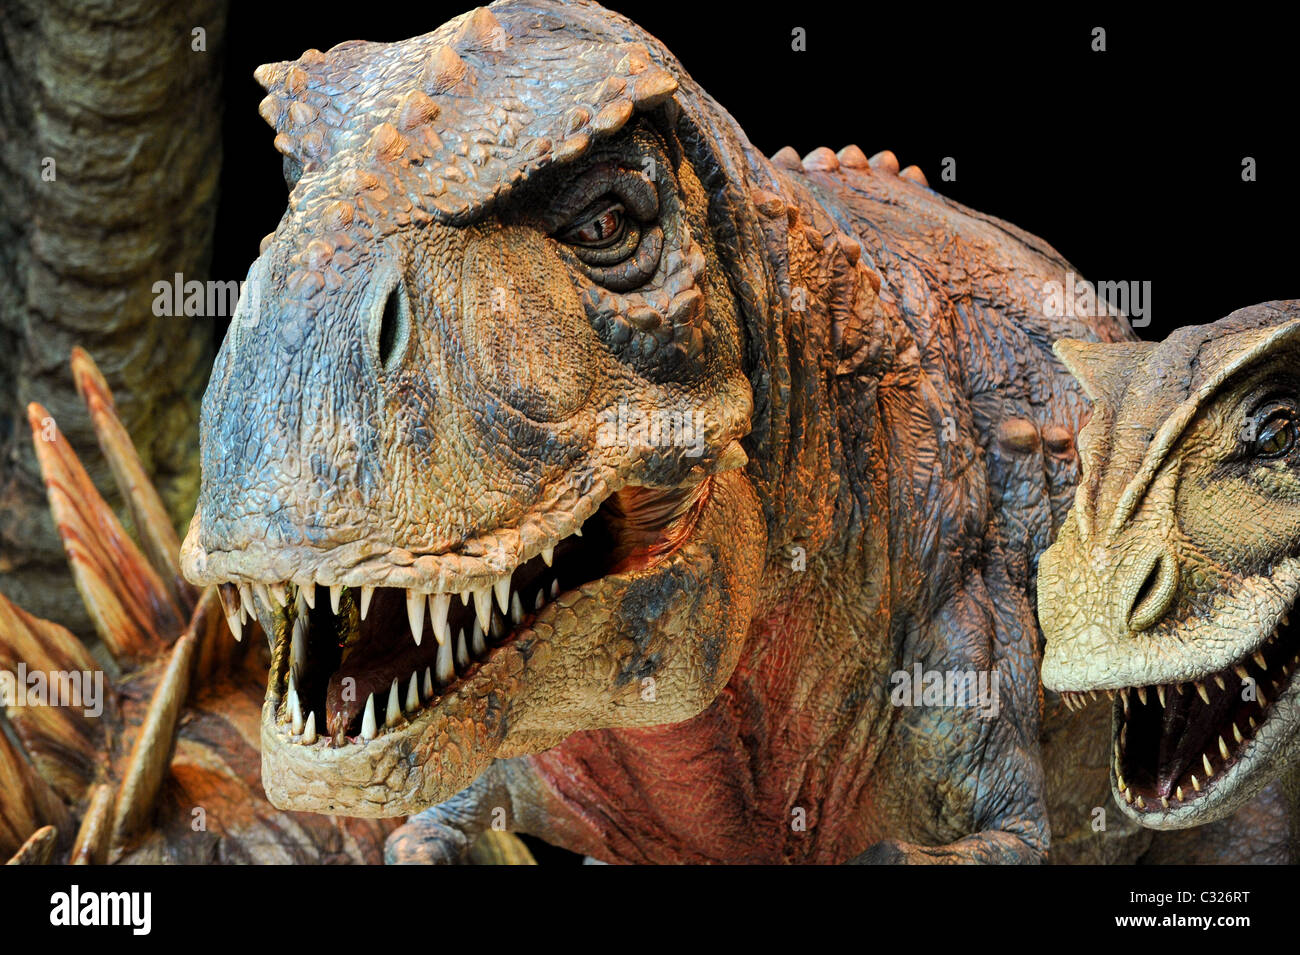 The all-star cast of 'Walking With Dinosaurs' at the 02, 5th August 2009. - Stock Image